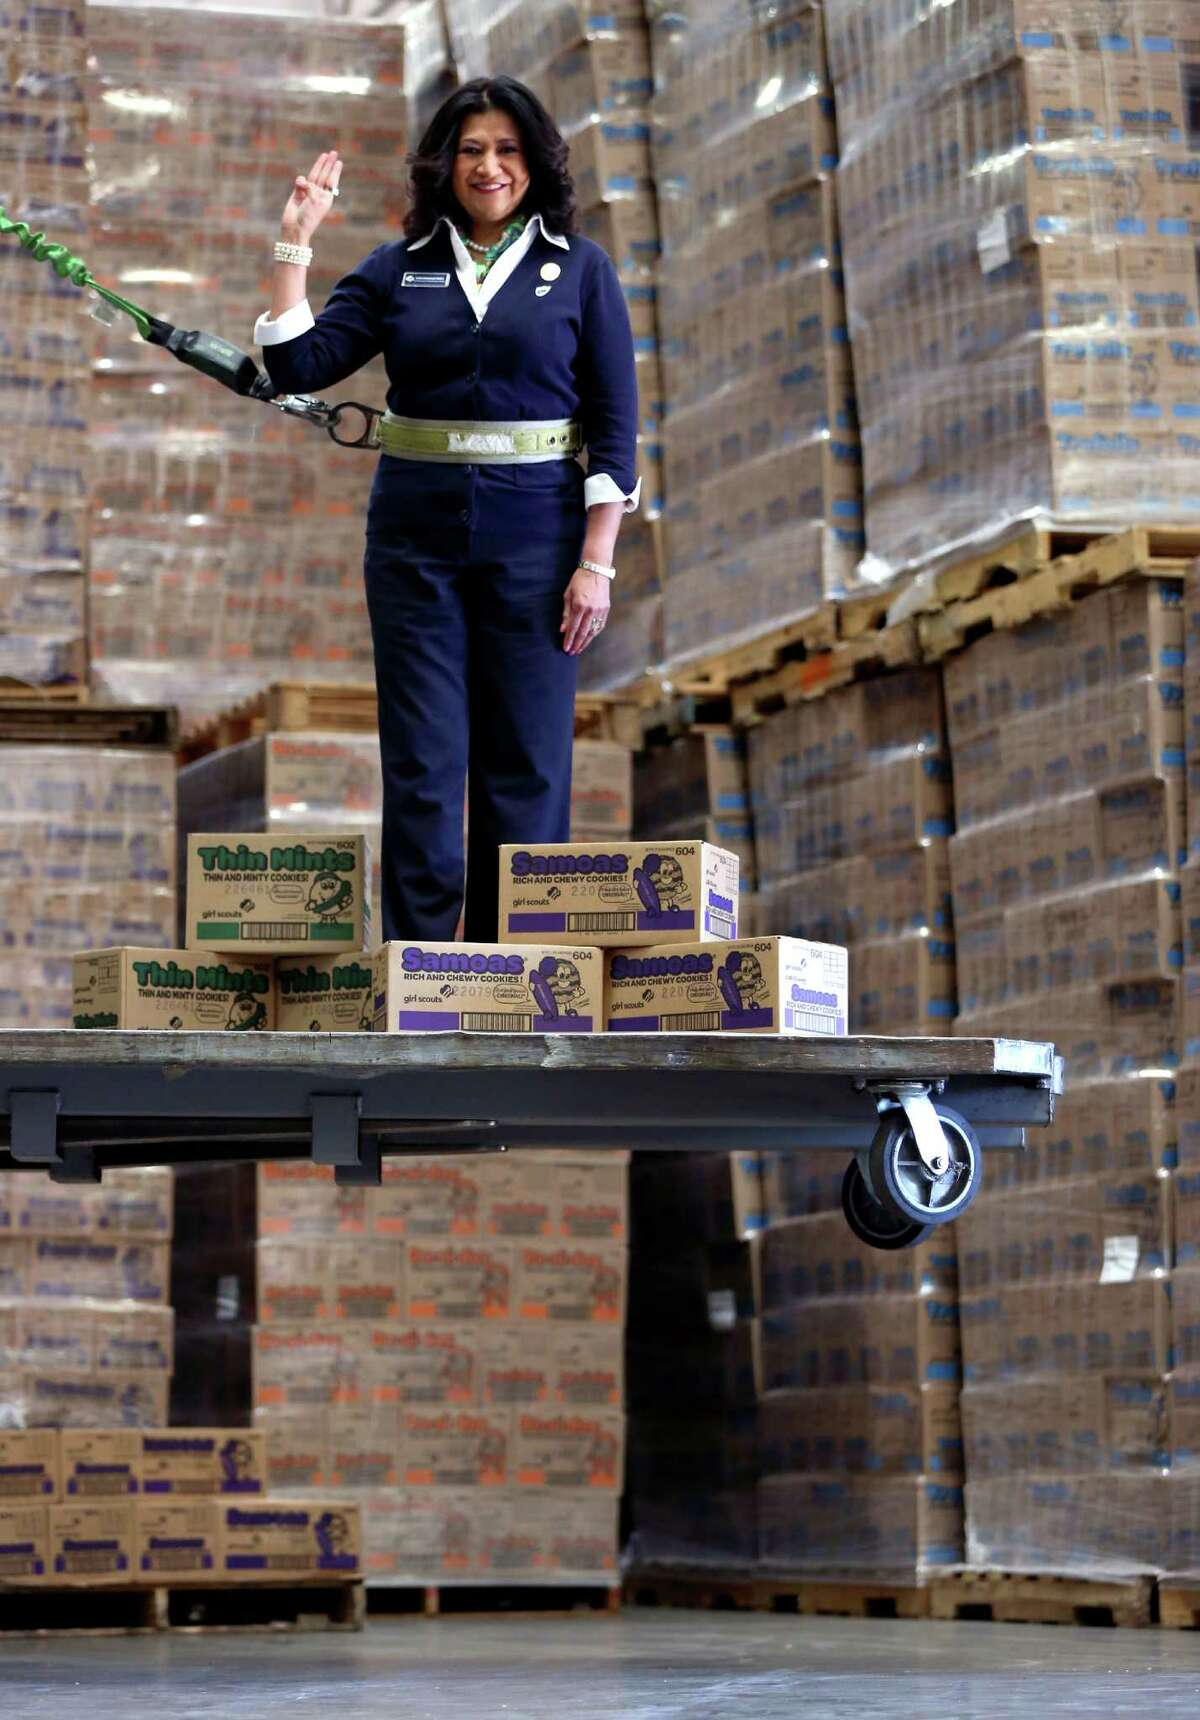 Girl Scouts Cookie Delivery in 2013. Girl Scouts of Southwest Texas CEO Rose Gonzalez Perez gives the scout salute Wednesday, Jan. 30, 2013 as she poses with some of the 1.38 million cookies set to be distributed in the next few days by the council which serves 23,500 girls in a 21 county area.